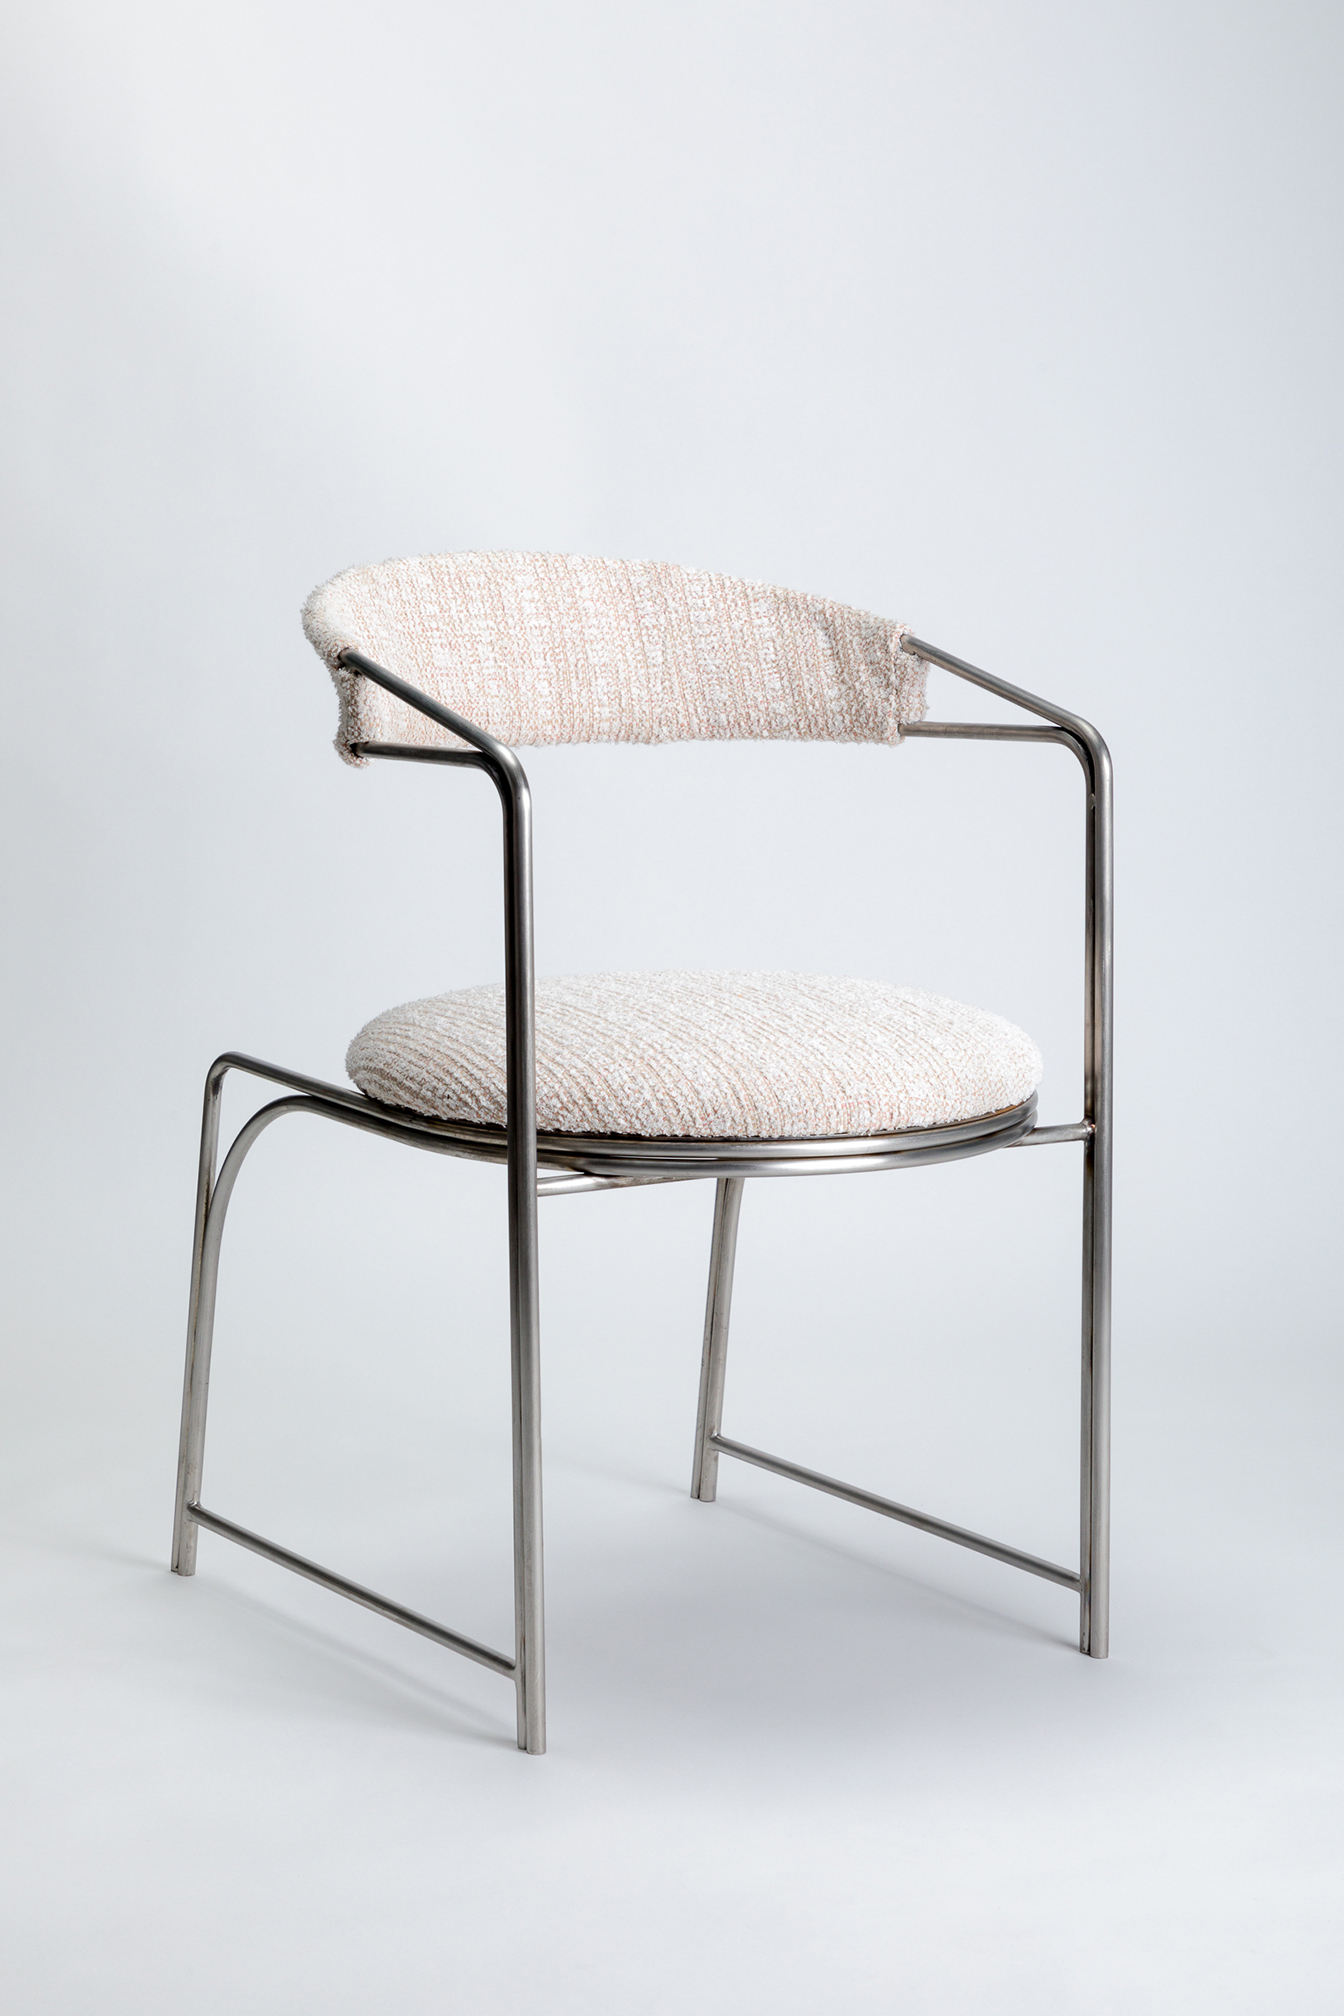 LAUN - Bacall Chair Pink 006_photo credit Little League Studio.jpg